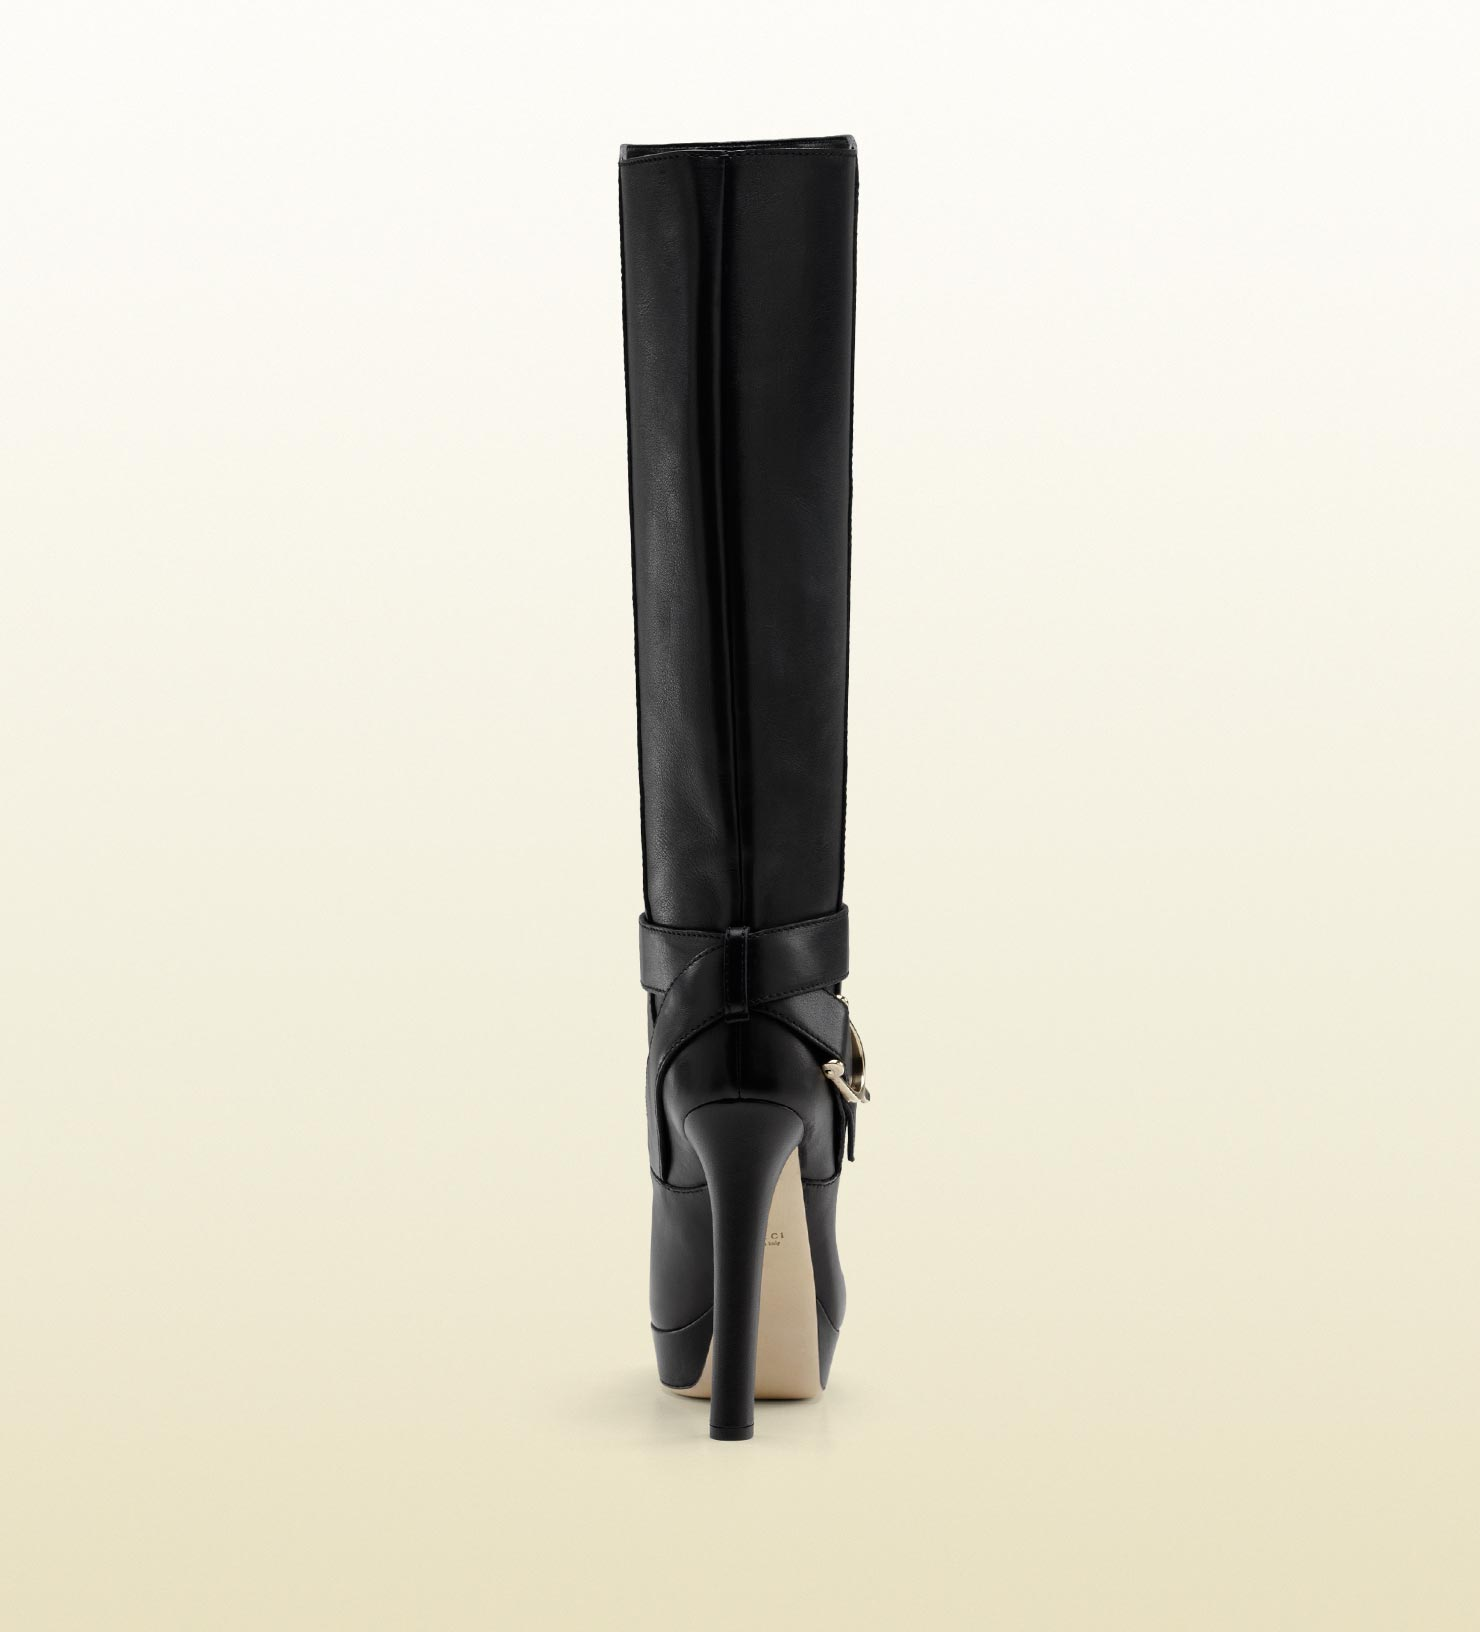 e9ee381c0b5 Gucci Stirrup High Heel Platform Boot with Spur Detail in Black - Lyst